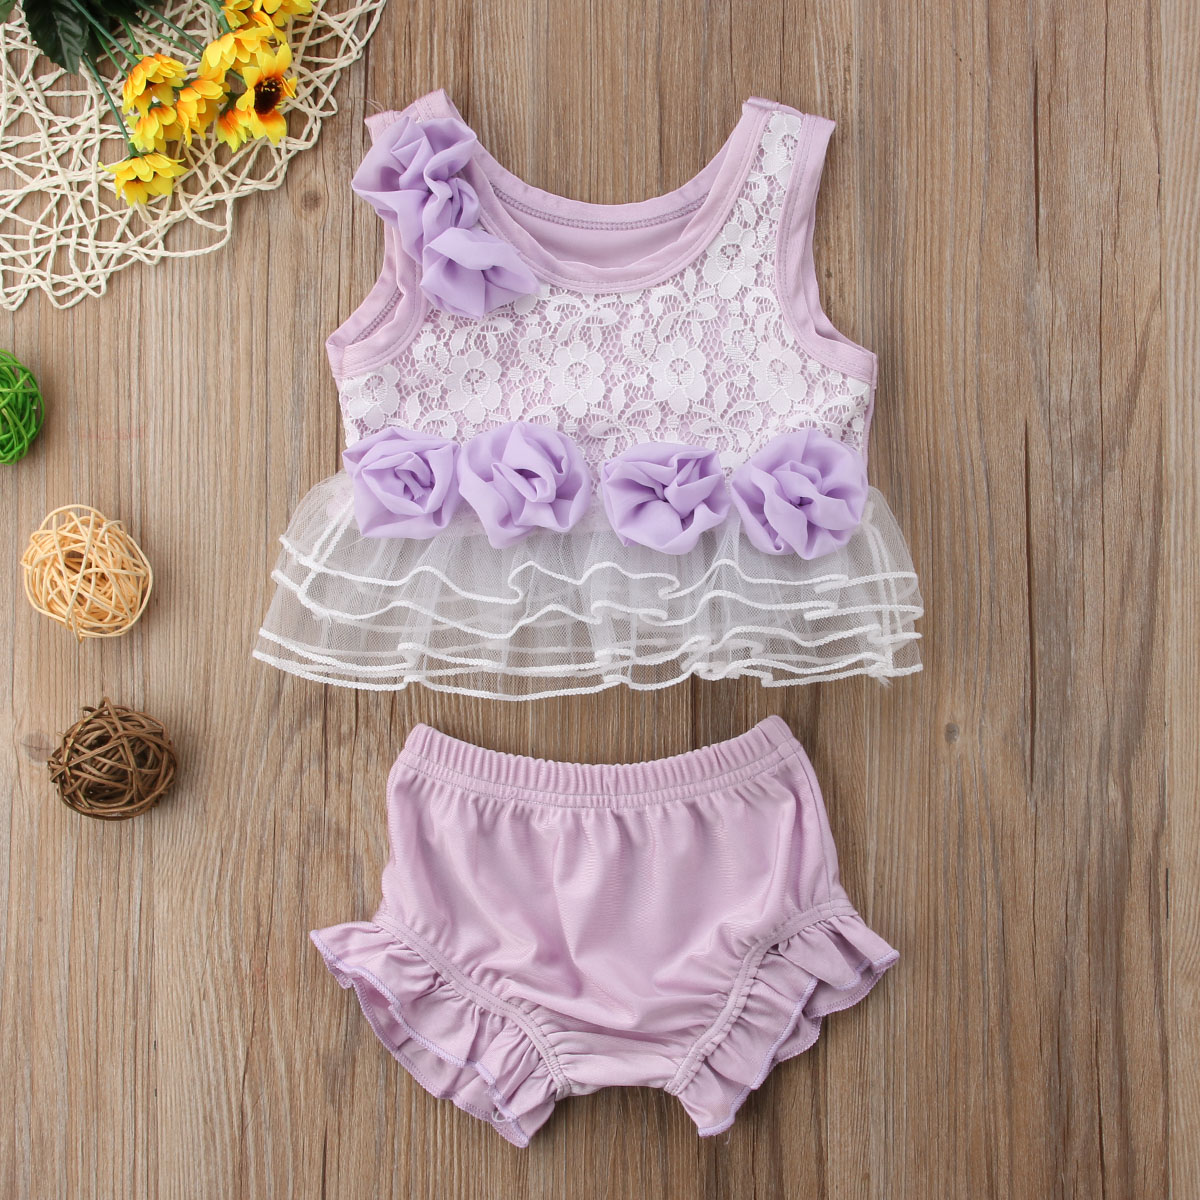 Summer Toddle Infant Baby Girls Clothes 2Pcs Outfits Set Sleeveless Floral Lace Tops Shirts Ruffle Shorts Princess Outfits 0-18M